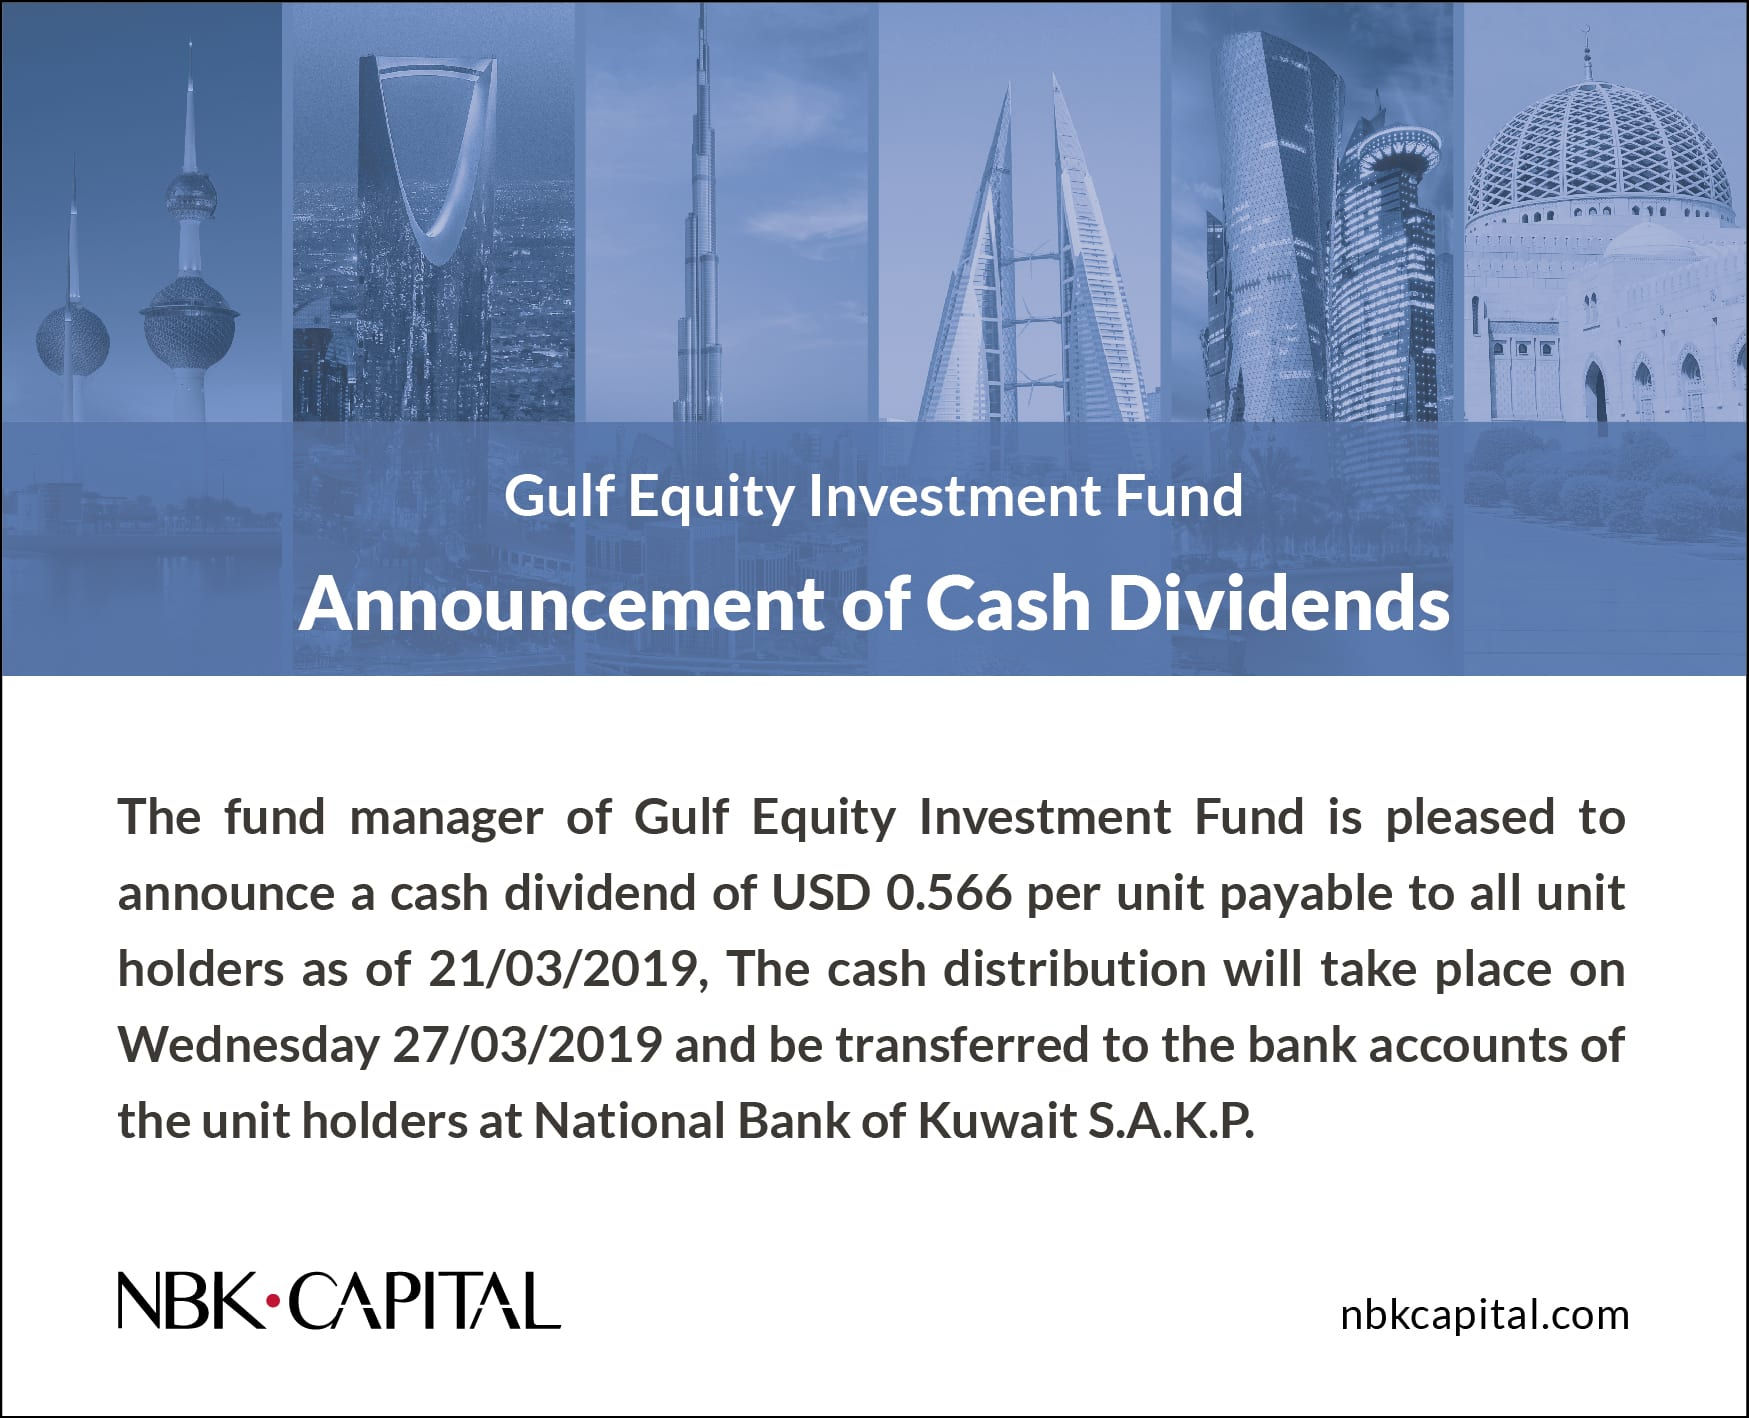 Gulf Equity Investment Fund Announcement of Cash Dividends